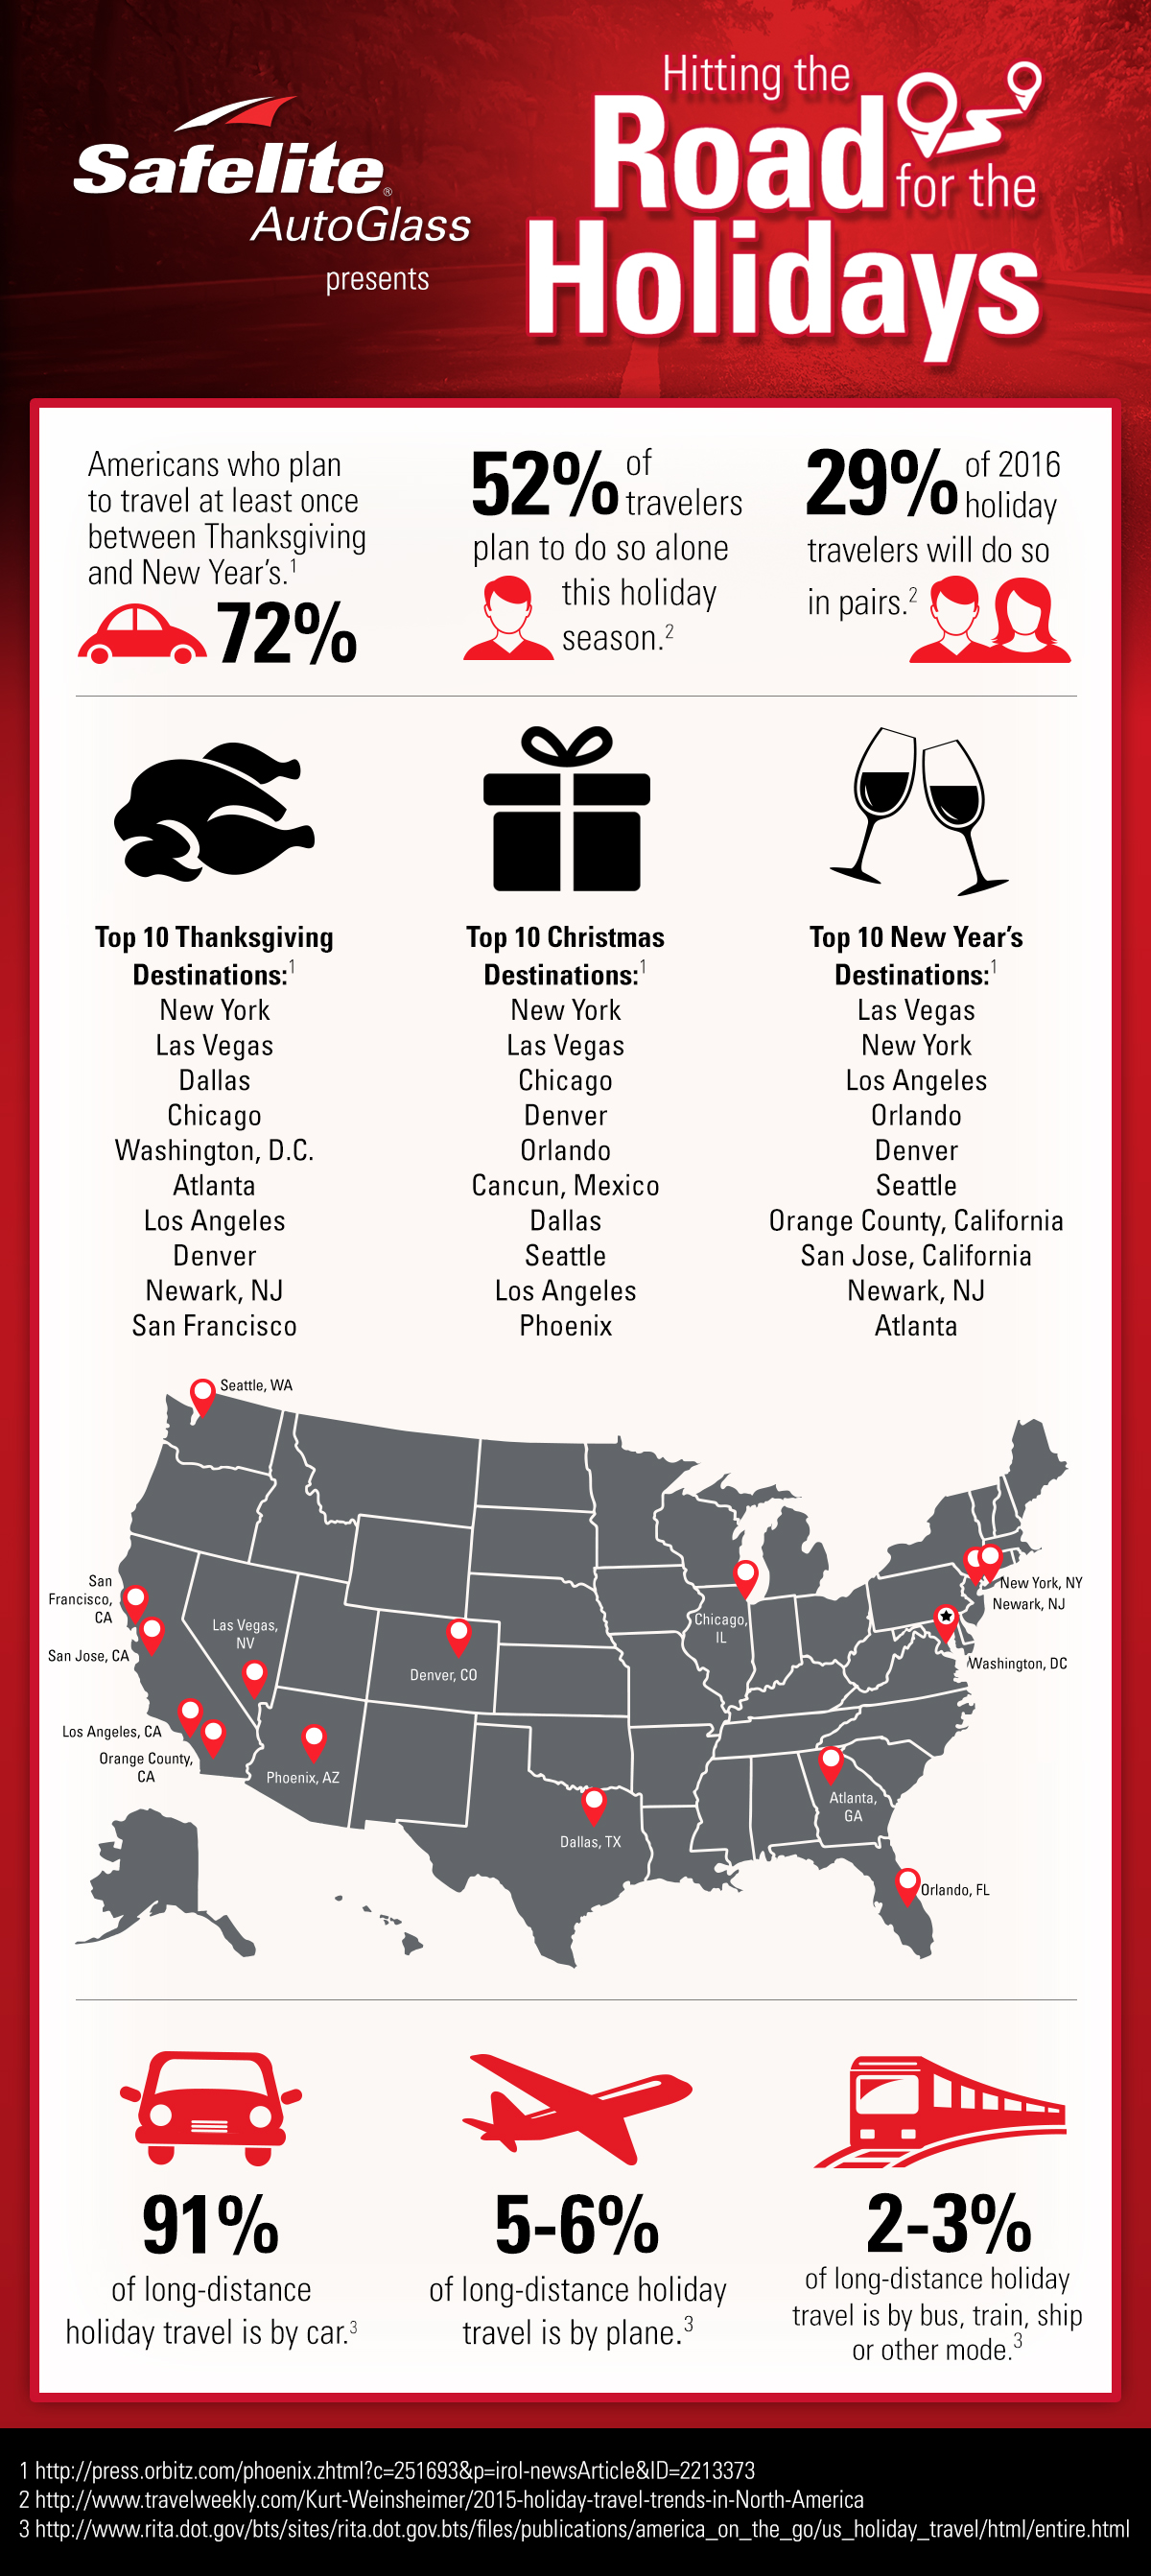 Will you be one of the millions of holiday travelers hitting the road? Safelite shares fun facts in this holiday travel infographic.